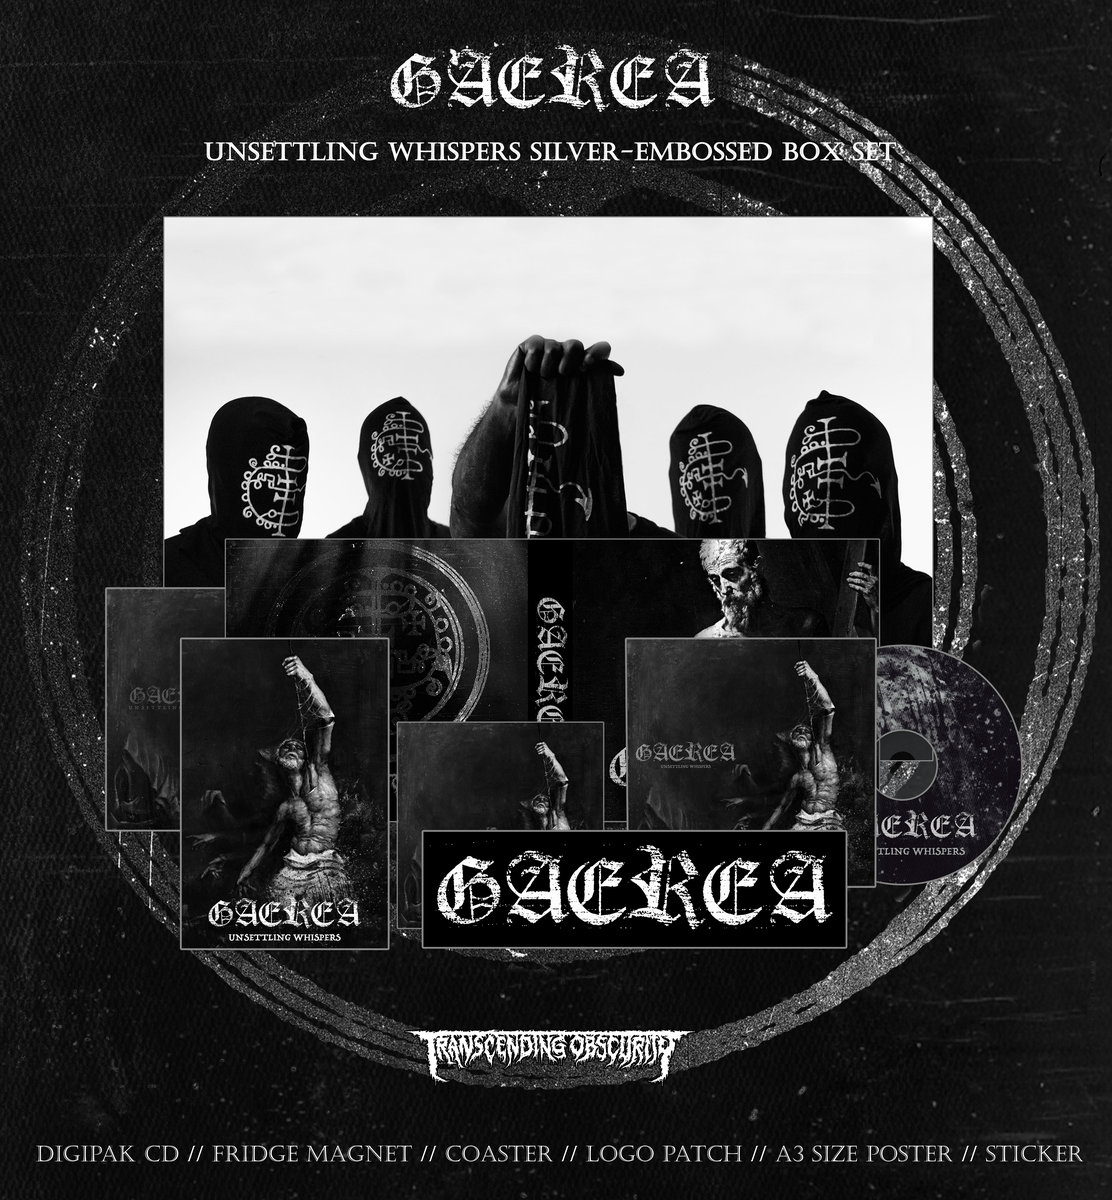 Gaerea Silver-embossed Black Box Set with Alternate Artwork